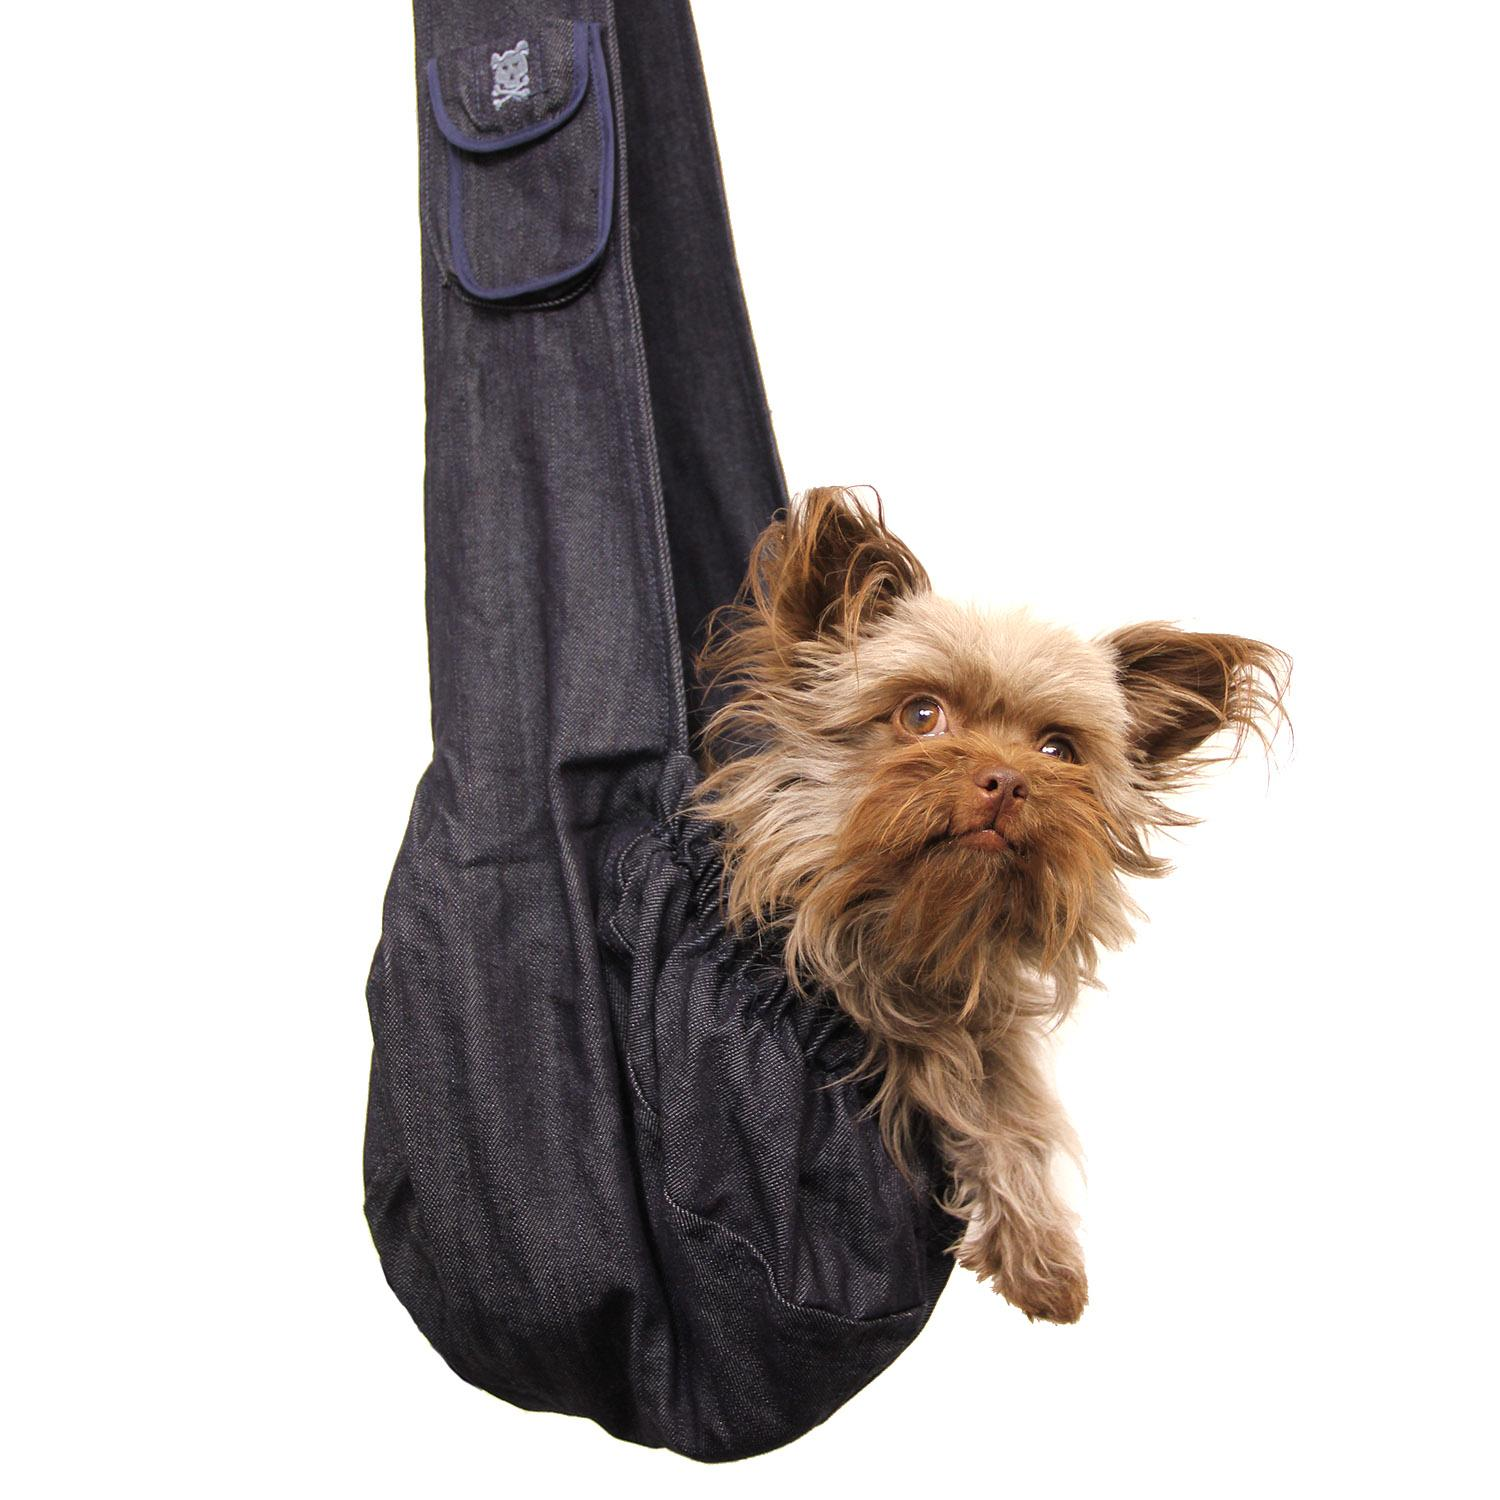 Just Hangin' Messenger Style Sling Pet Carrier - Dark Denim